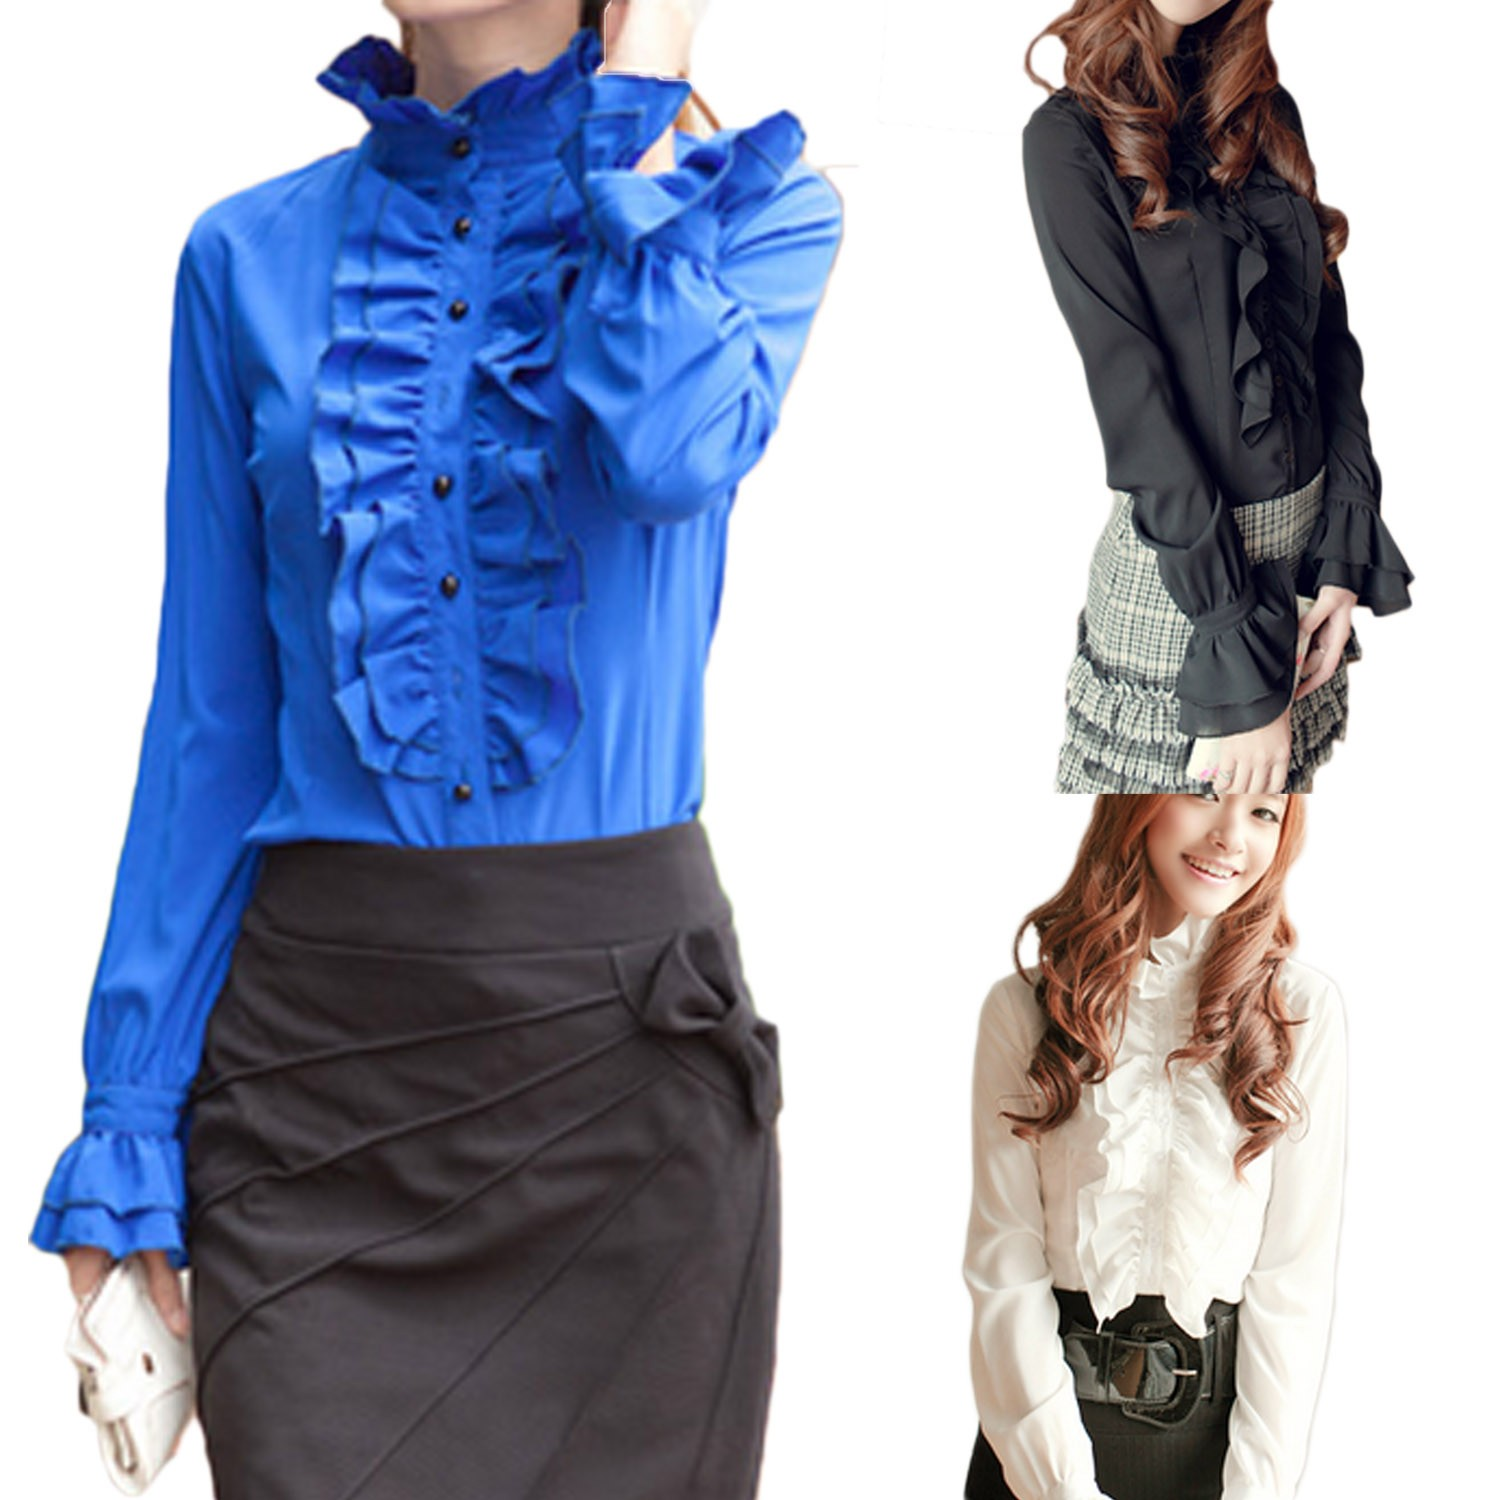 Ruffle Button Sheer Chiffon Stand Collar Shirt Blouse